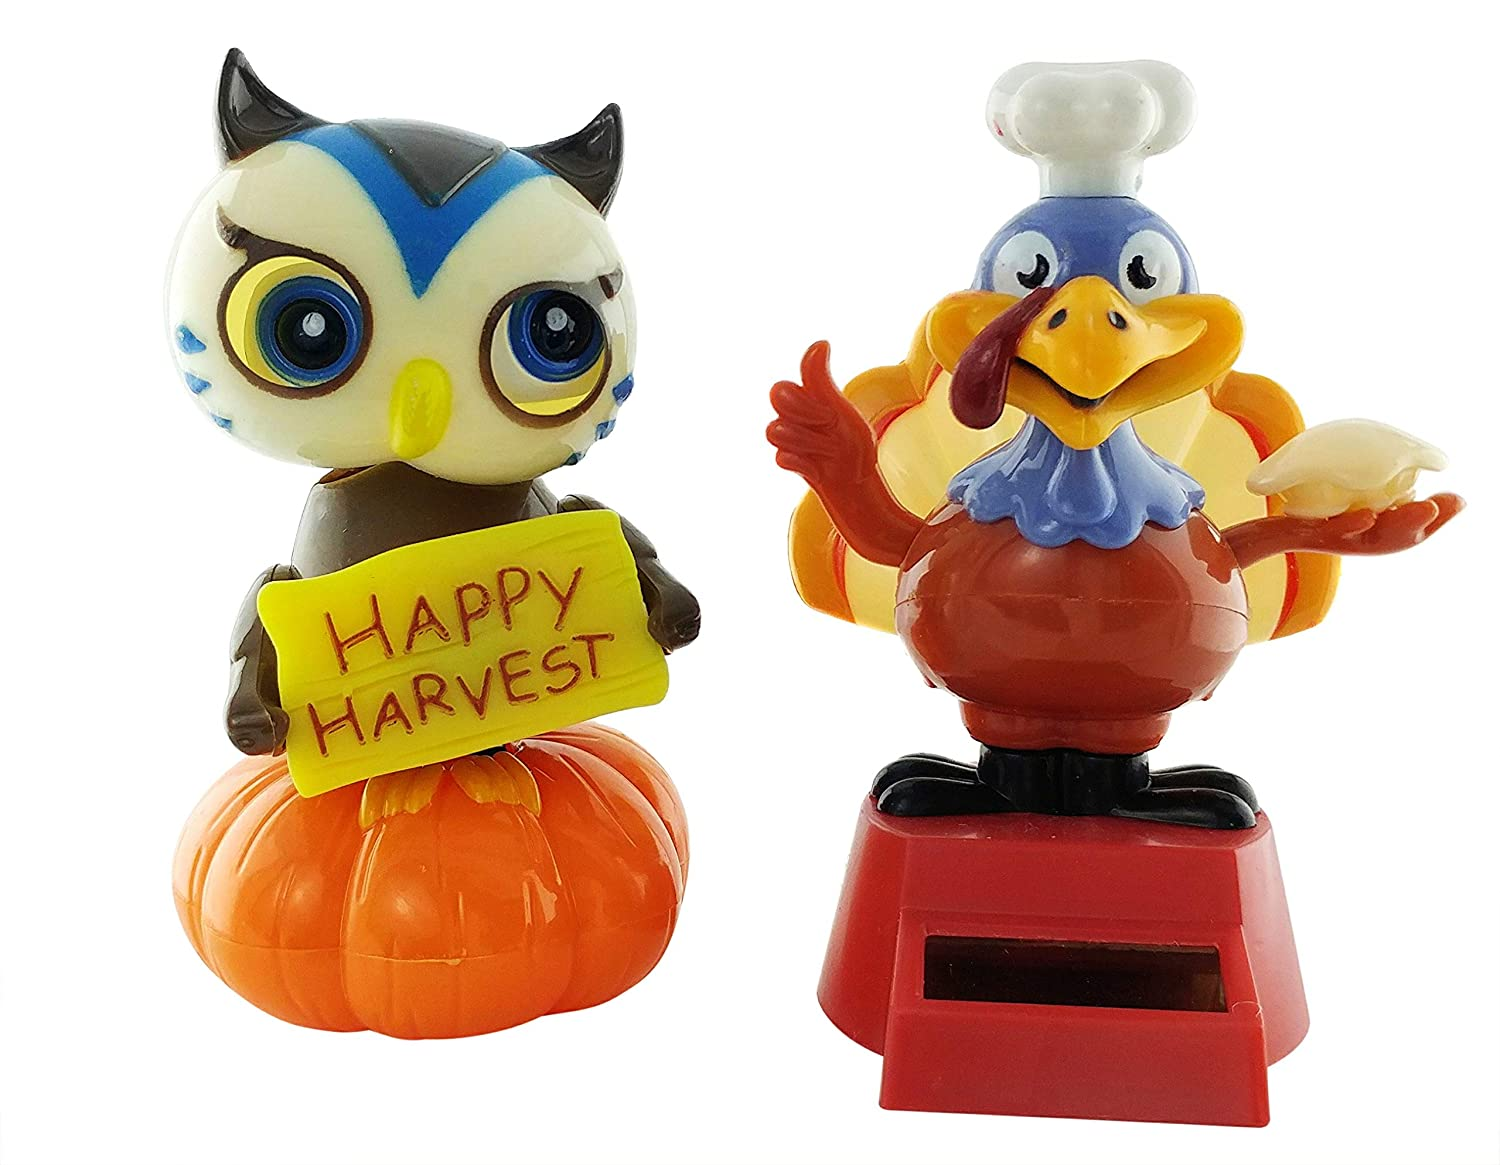 Happy Harvest Free Shipping Dancing Owl Solar Powered Dancing Owl